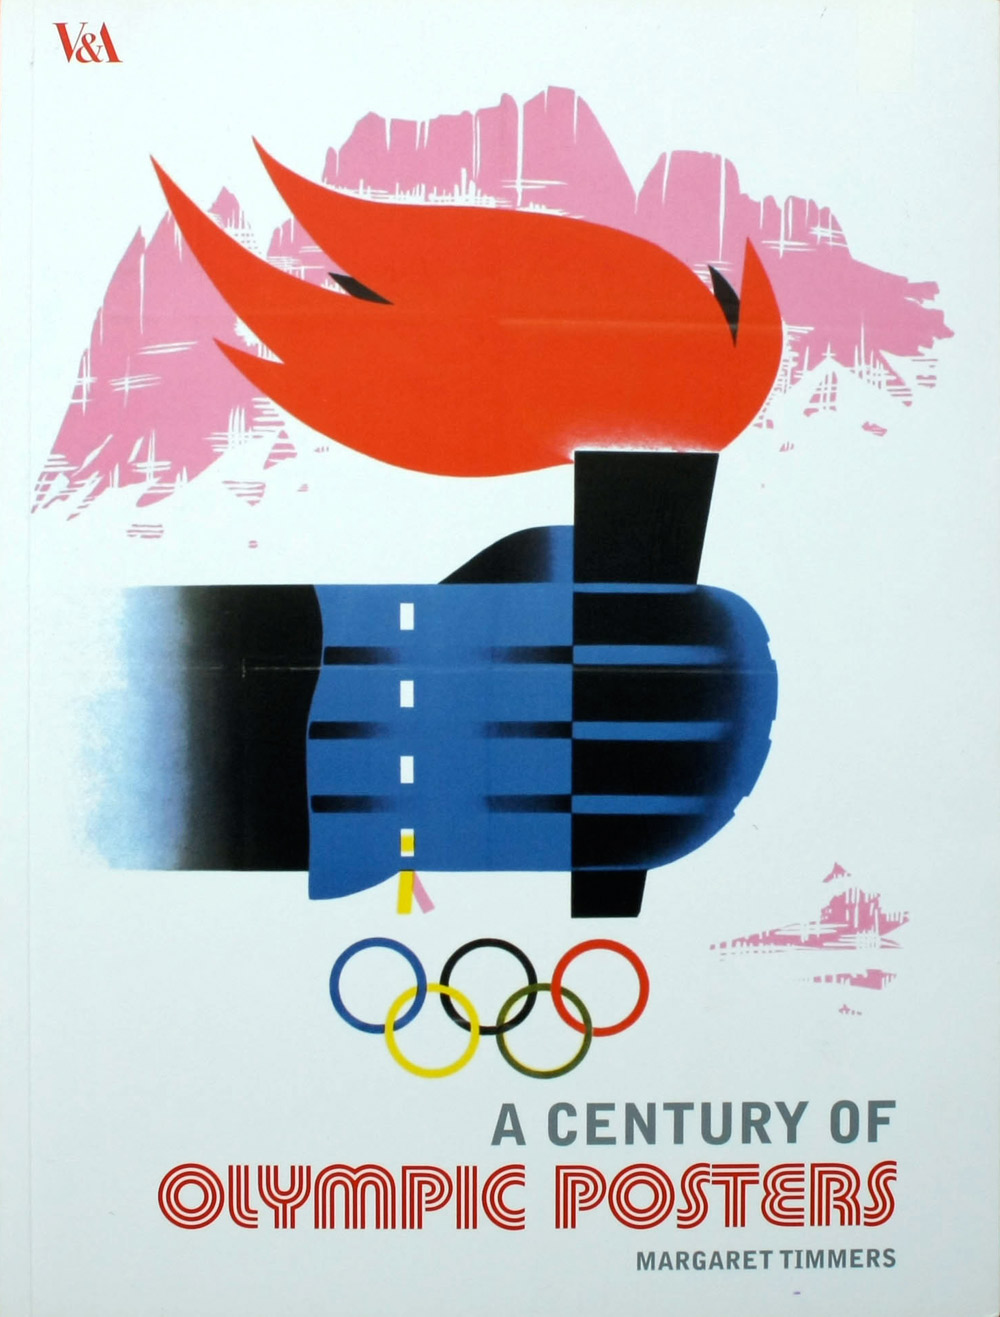 A Century of Olympic Posters. The front cover reproduces a poster for the 1956 Winter Olympics in Cortina d'Ampezzo, designed by Mario Bonilauri.